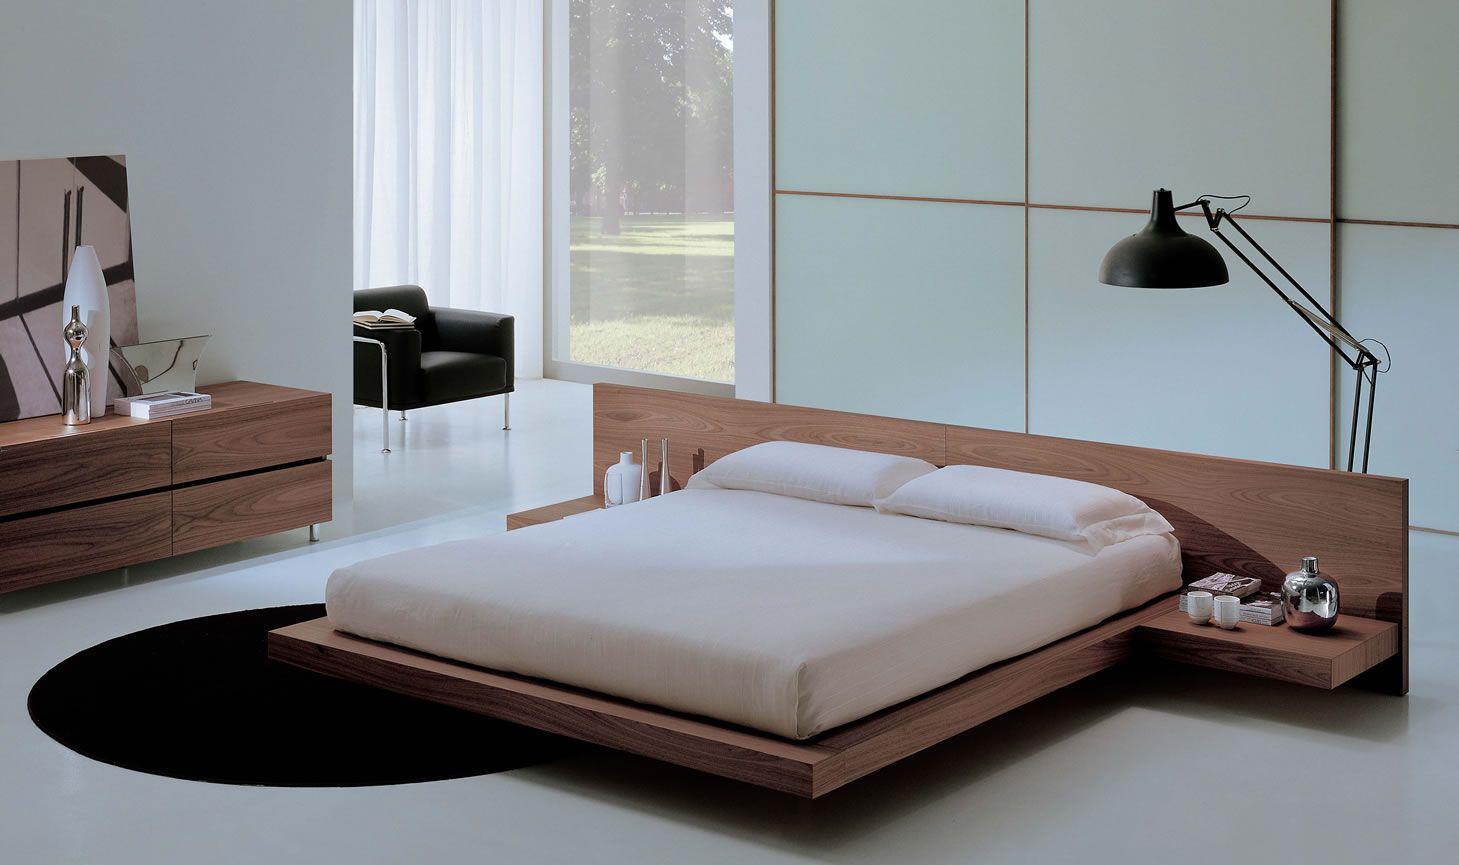 25 Amazing Platform Beds For Your Inspiration | Modern bedroom ...